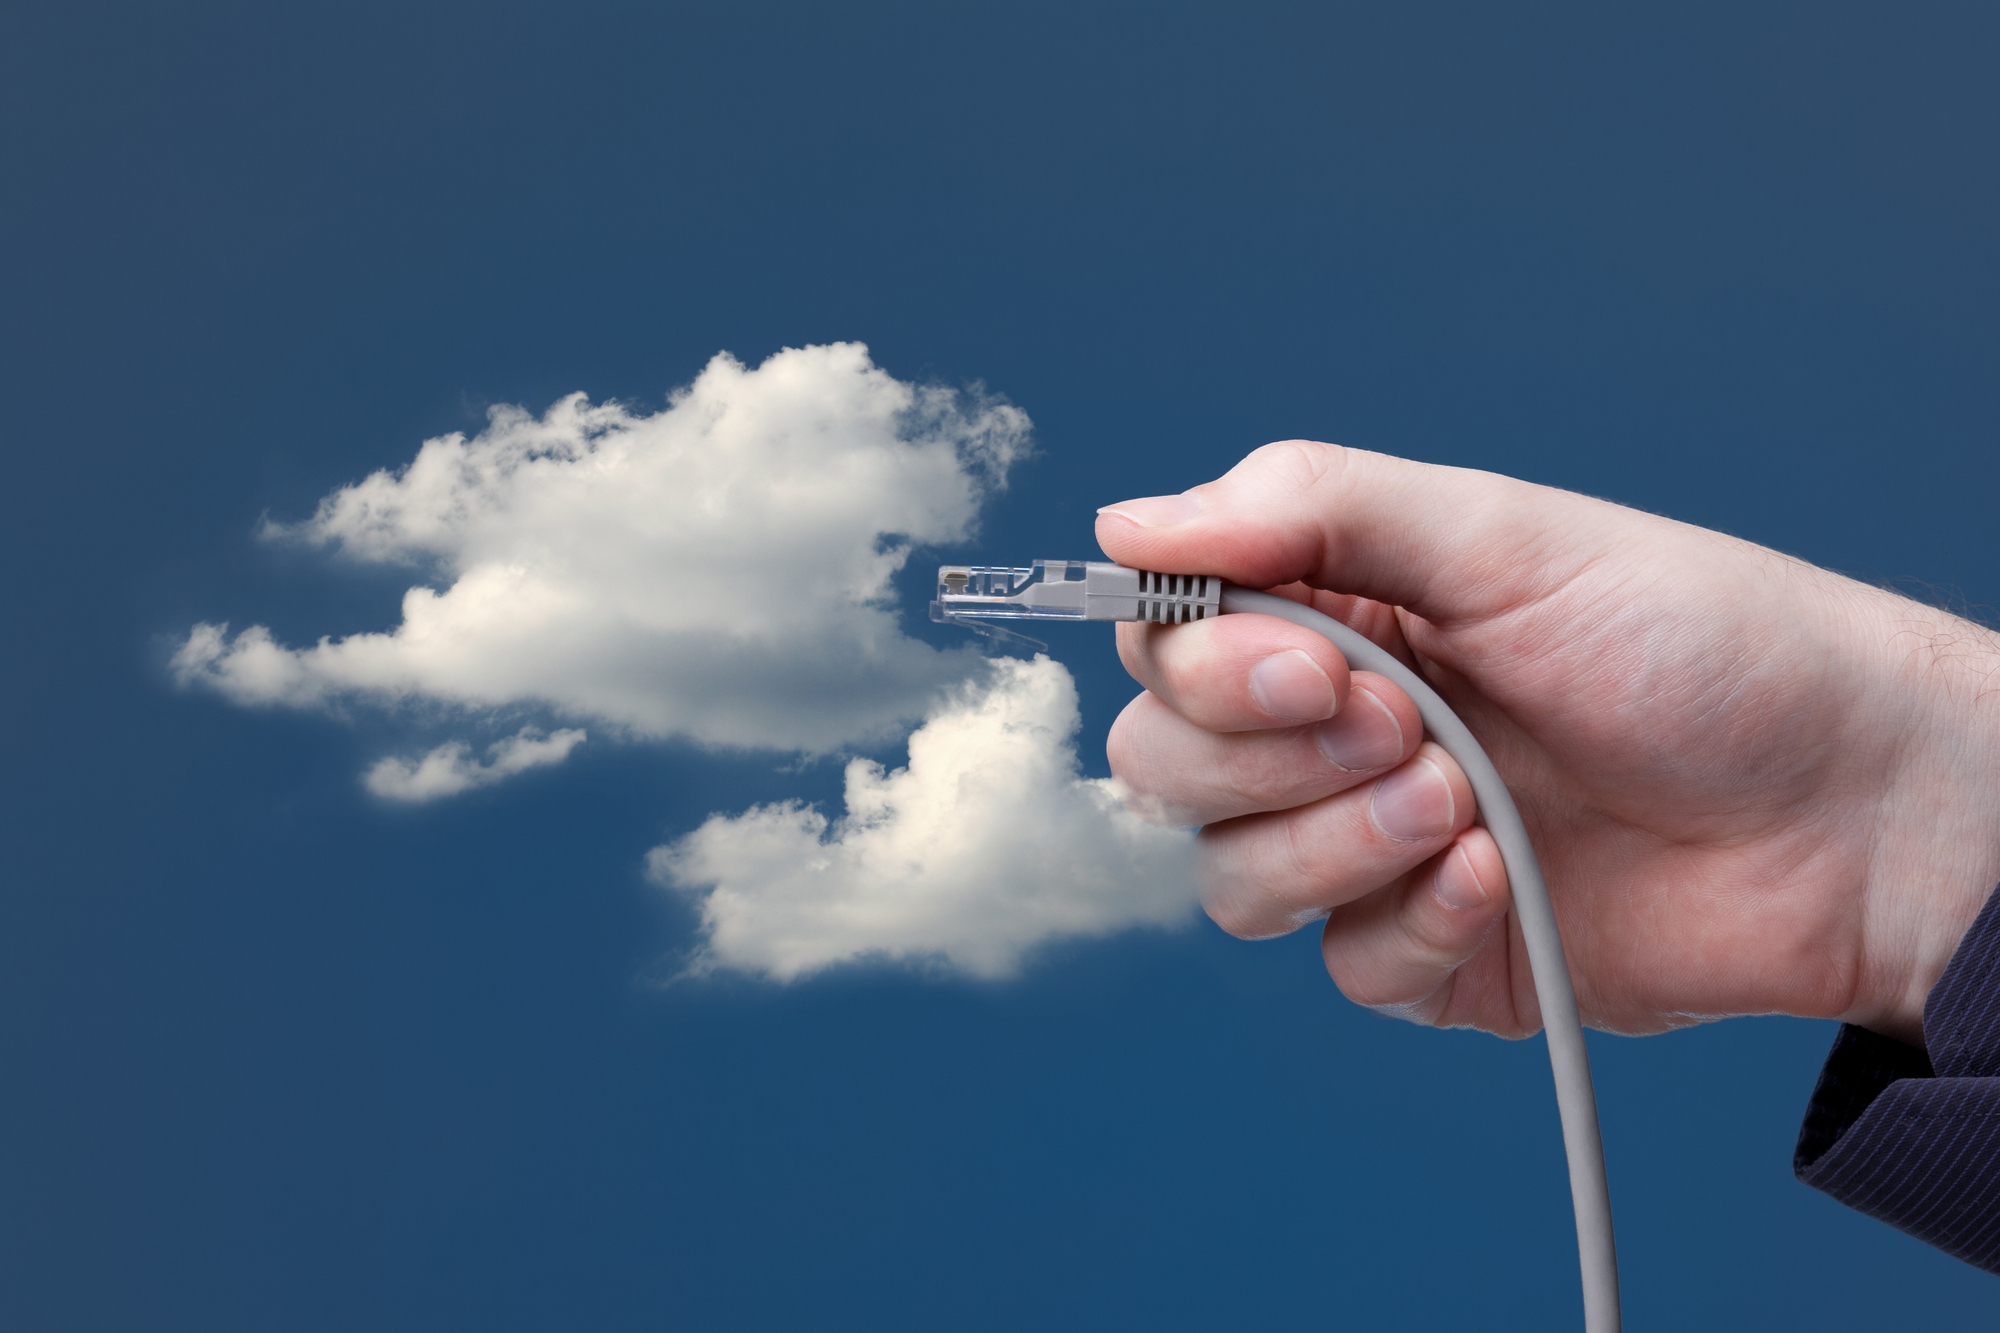 Plug into cloud